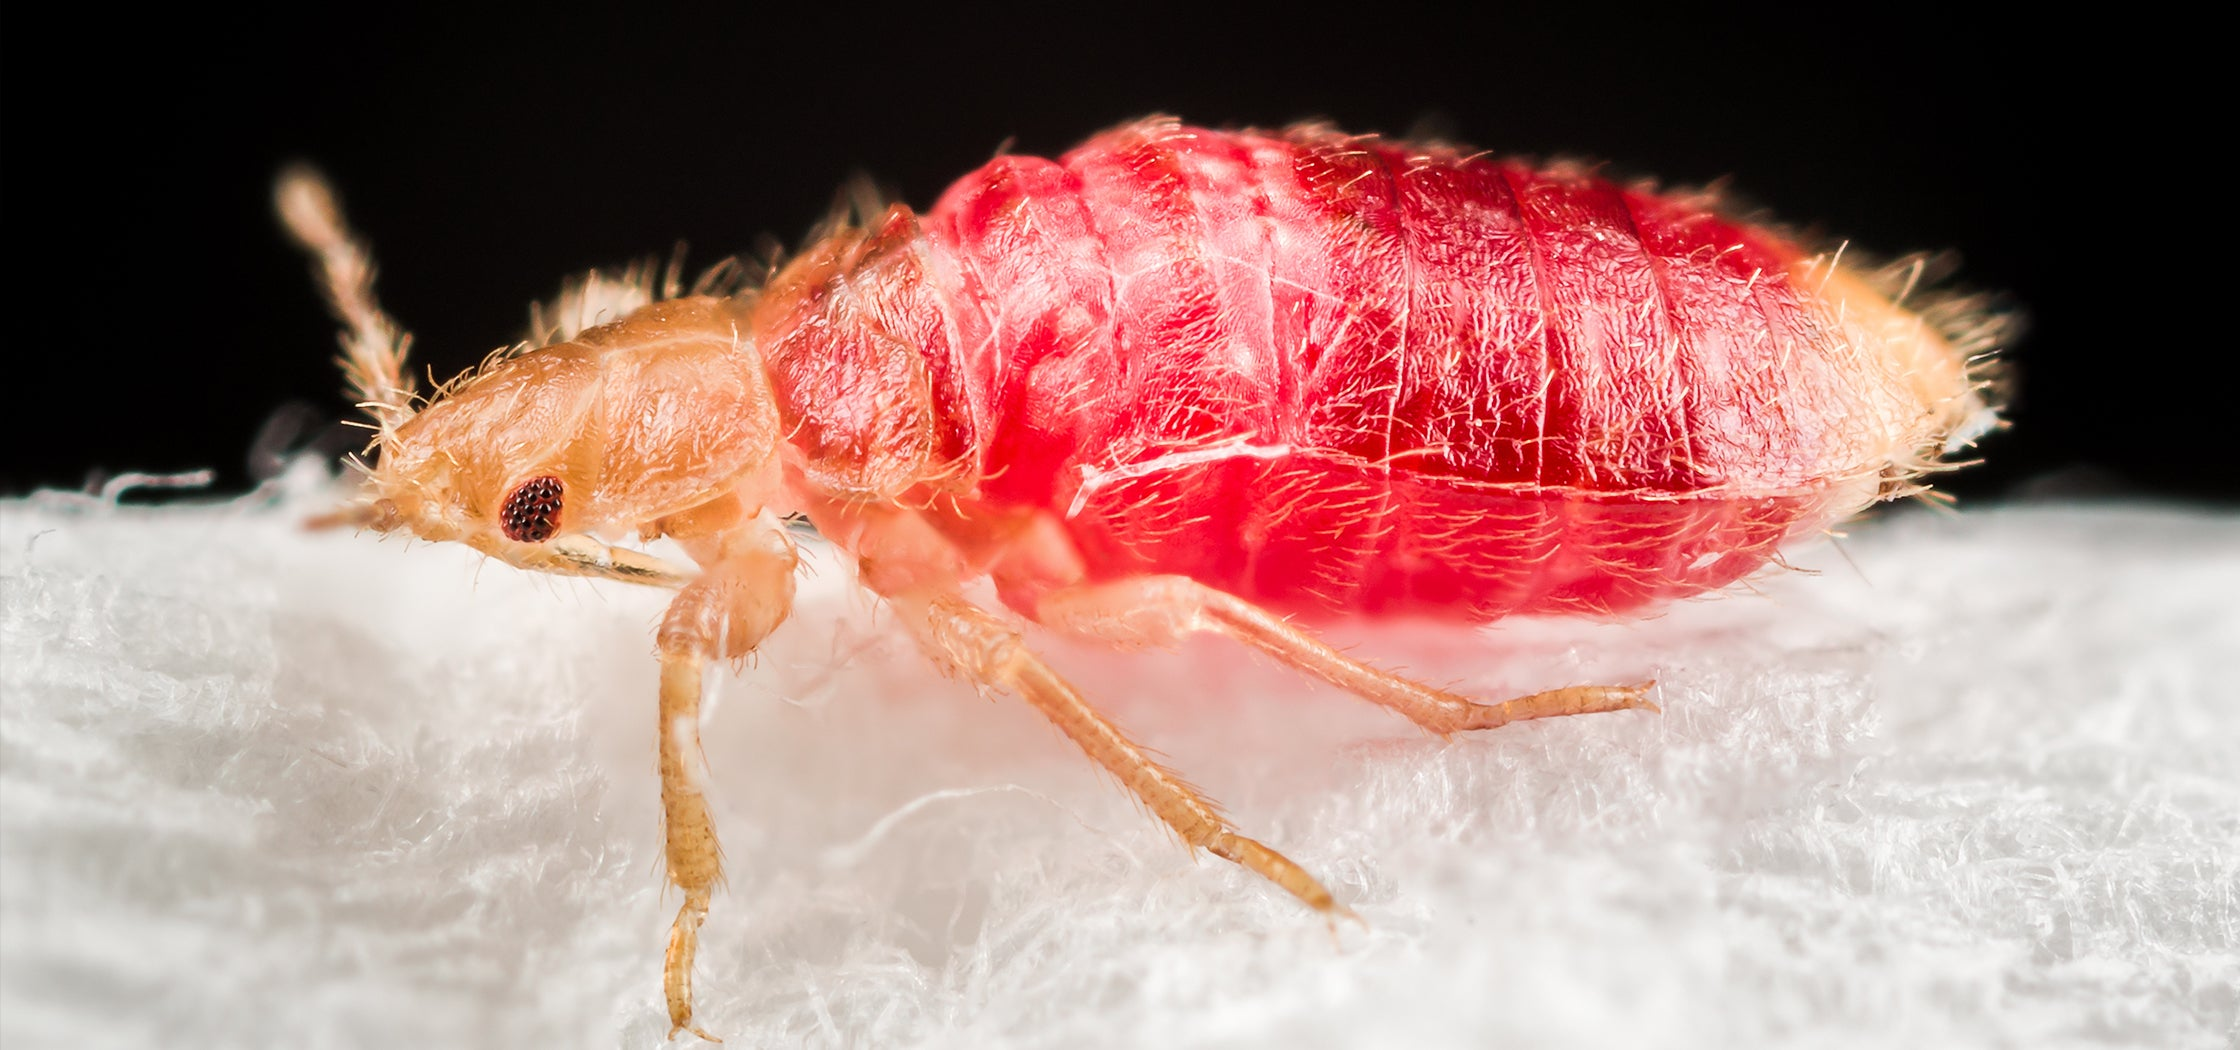 Safe Bed Bug Treatments: How Do I Know if I'm Treating Bed Bugs Safely?